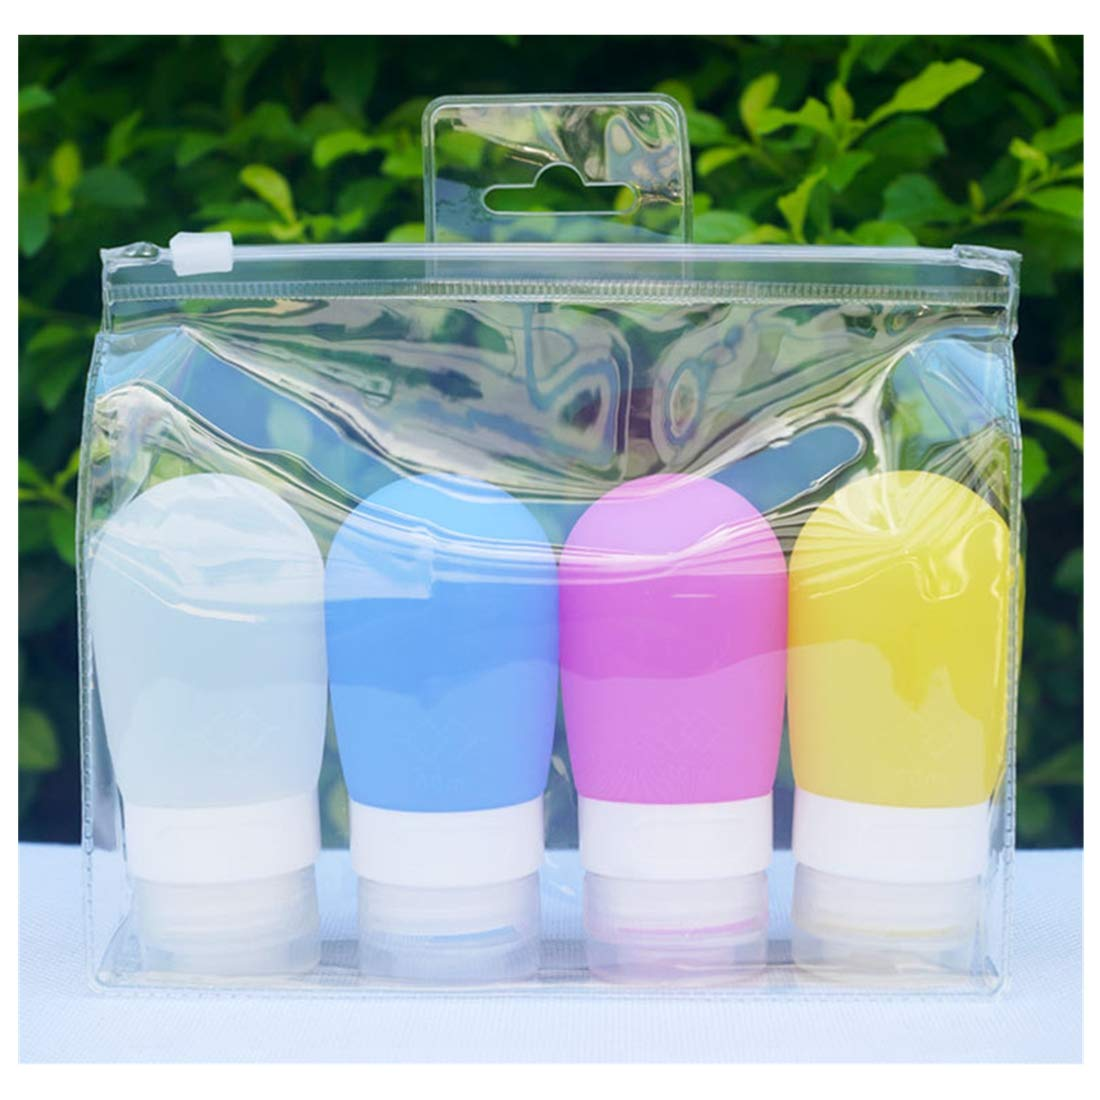 Travel Bottles Silicone Containers Set, Maeeli Leakproof Squeeze Bottles with Clear Bag TSA Approved Travel Accessories for Toiletries Cosmetic Shampoo